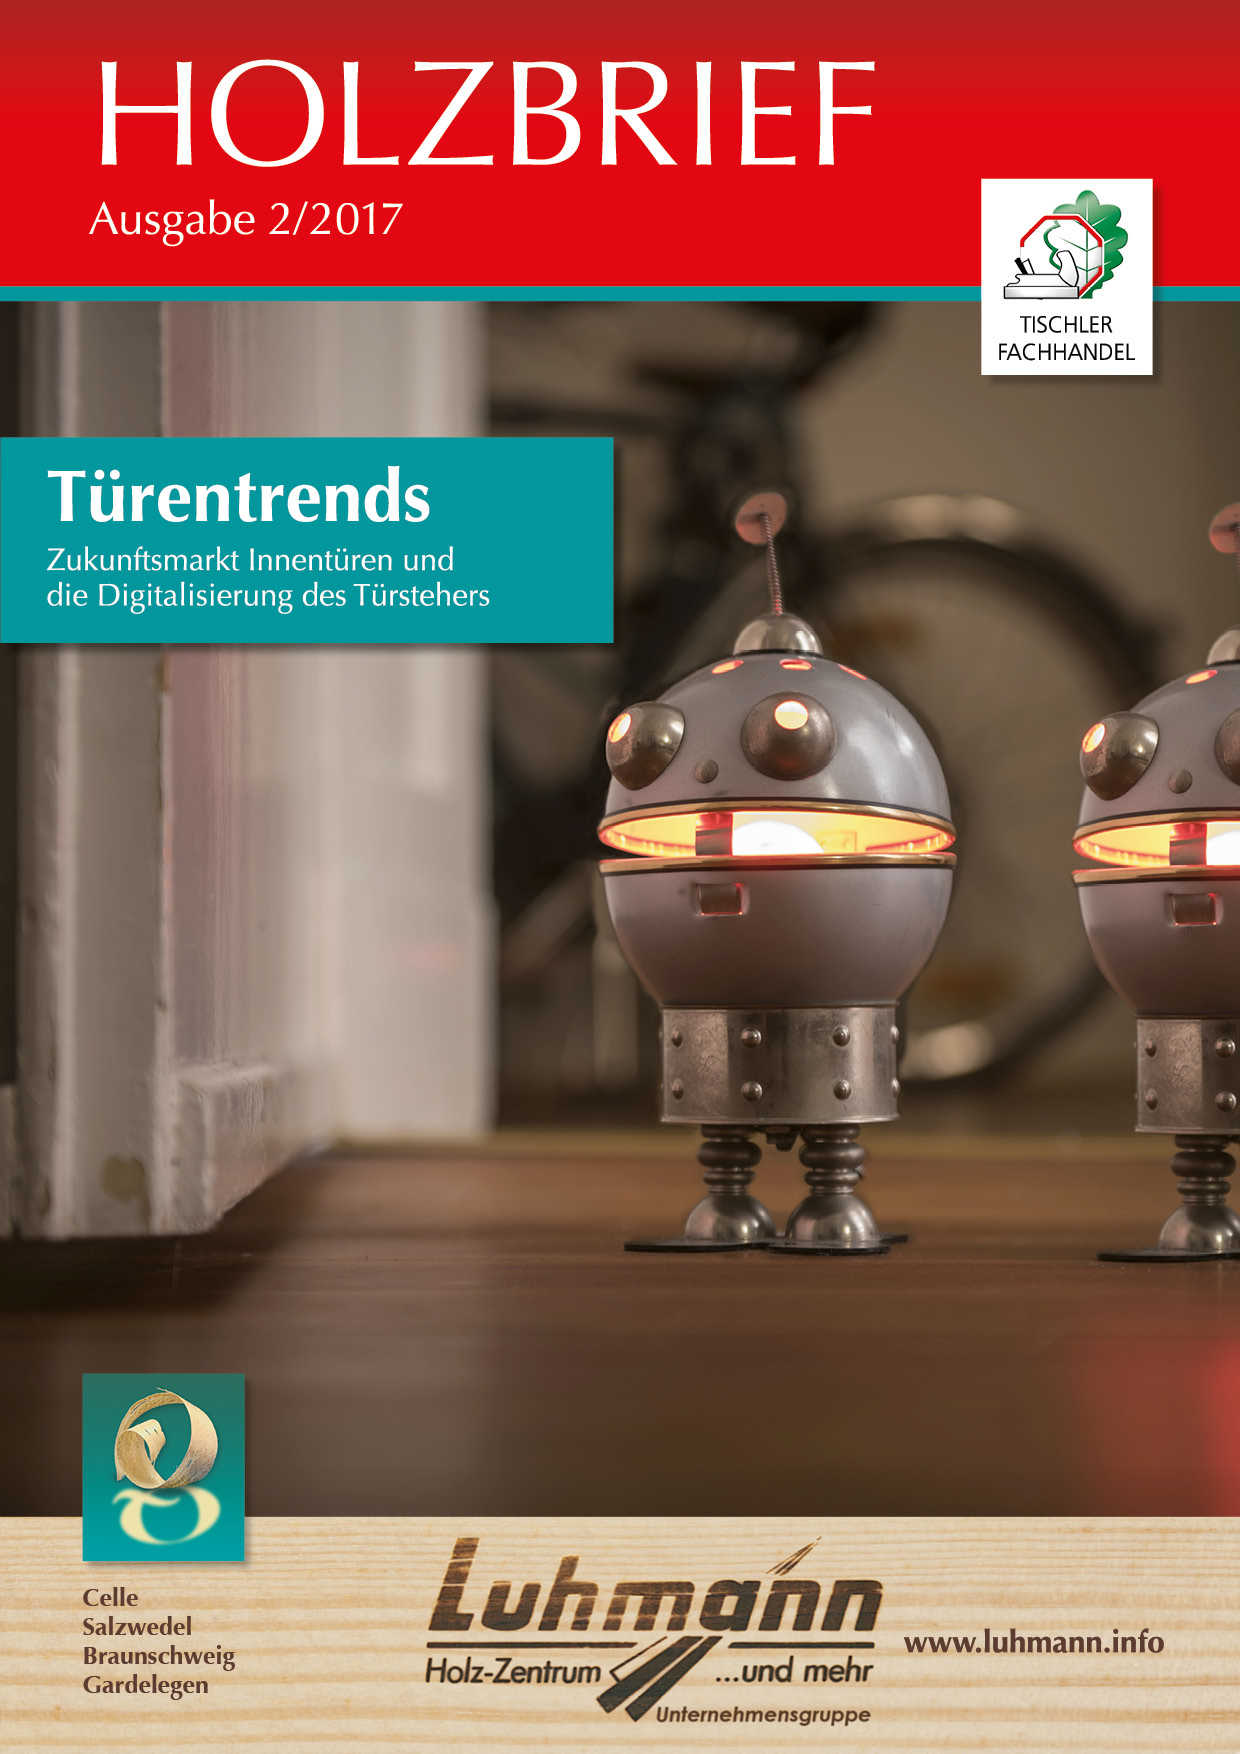 HOLZBRIEF Türentrends 2017